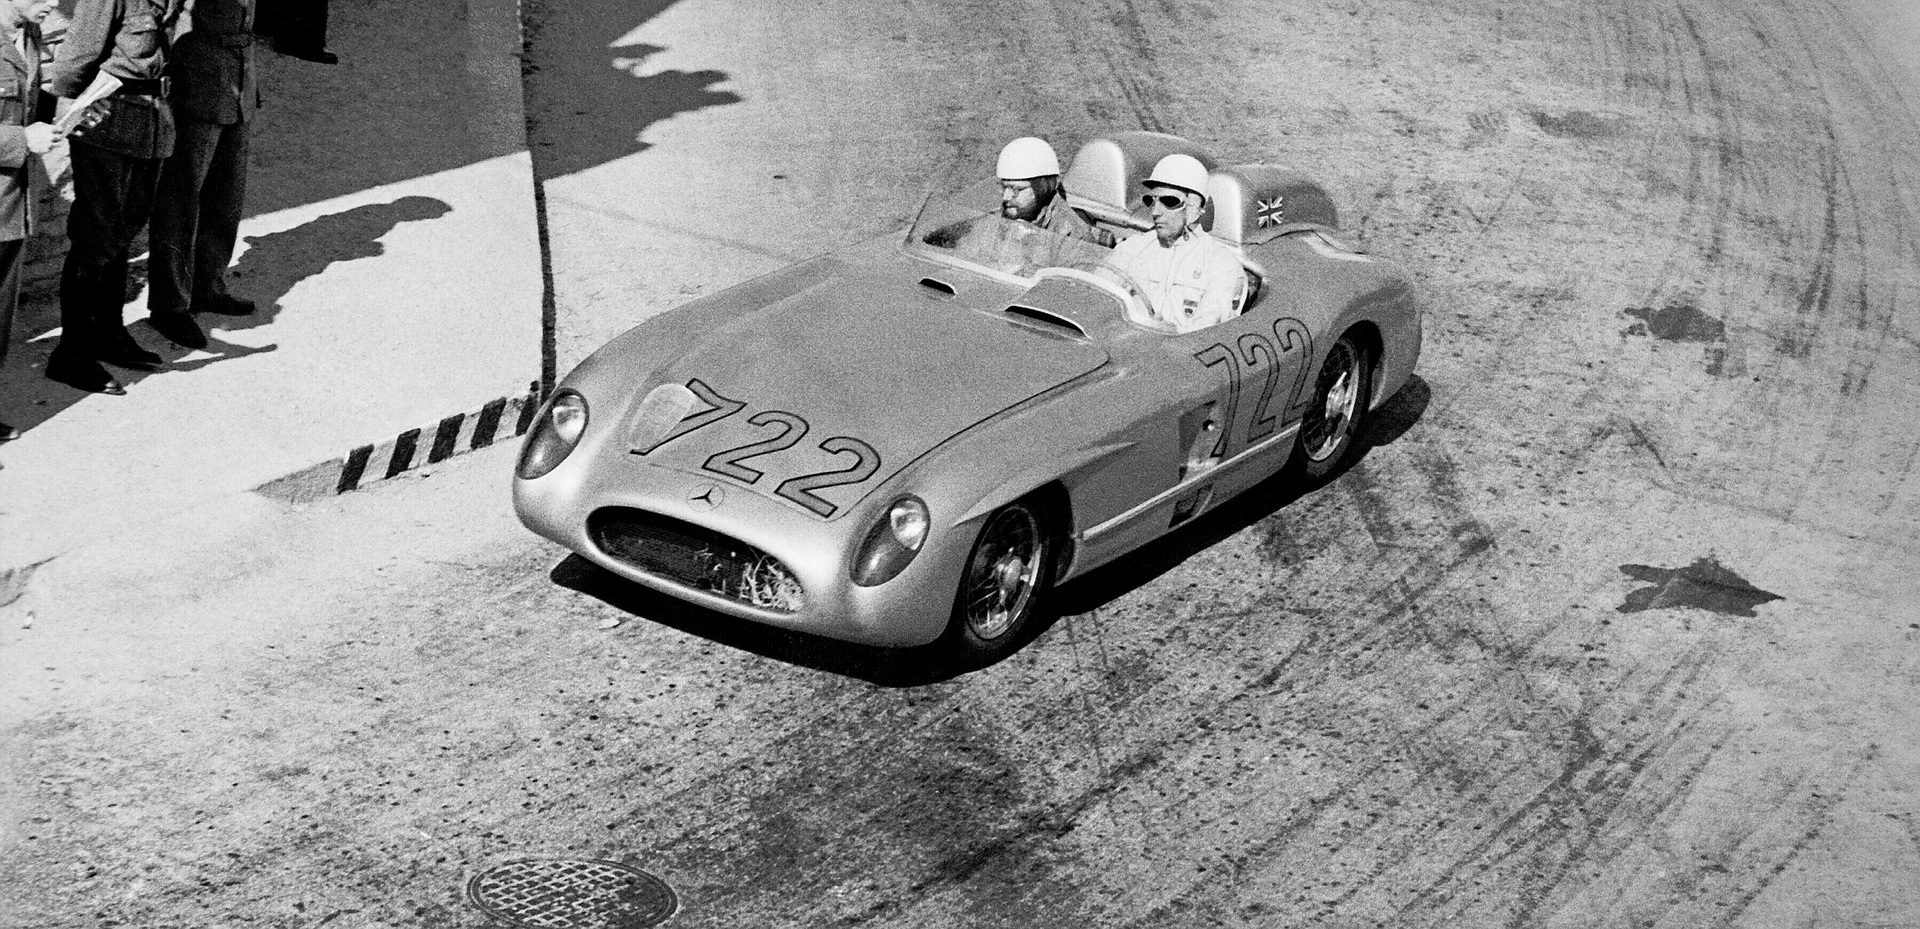 Mercedes To Honor Stirling Moss At Goodwood Revival With Two Of His Most Famous Race Cars